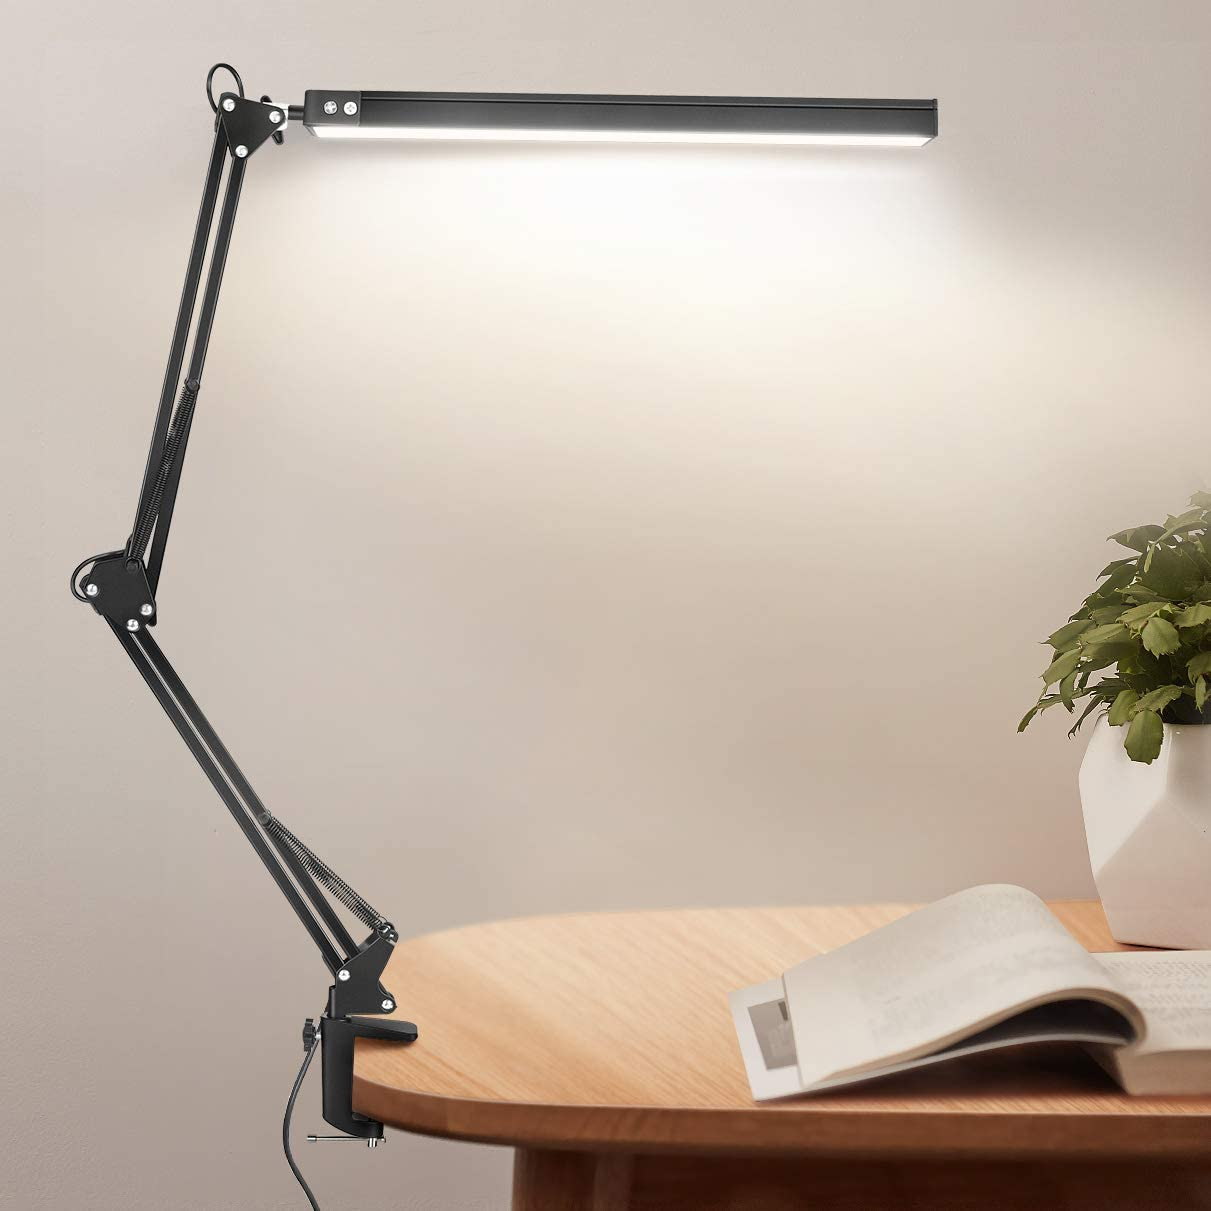 LED Desk Lamp with Clamp Eye-Care Ranking TOP7 Online limited product Jhua Swing 10W Arm